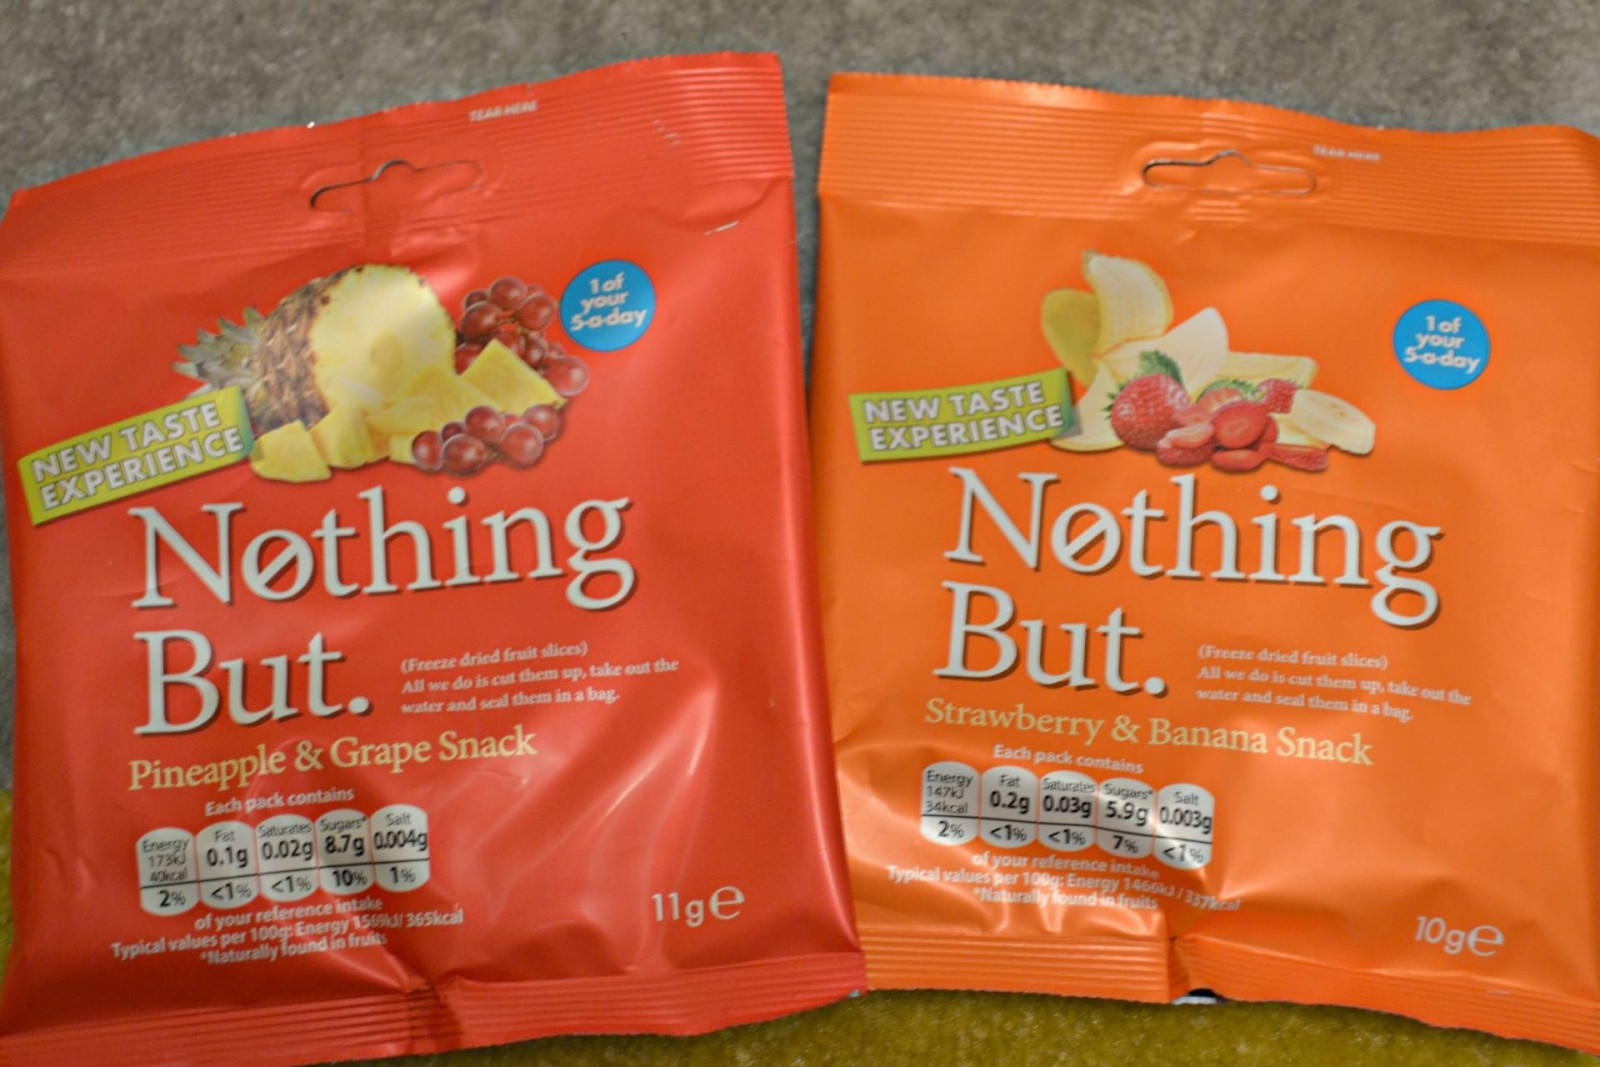 Nothing but